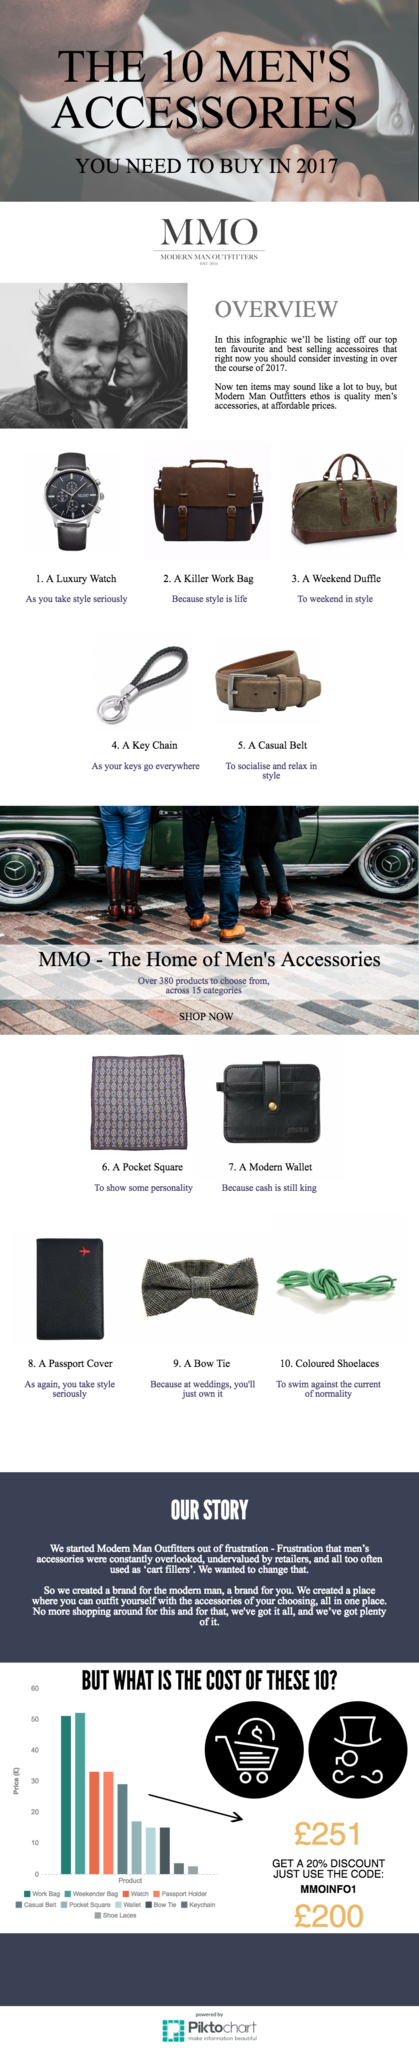 Infographic - the 10 men's accessories to buy in 2017 - Modern Man Outfitters